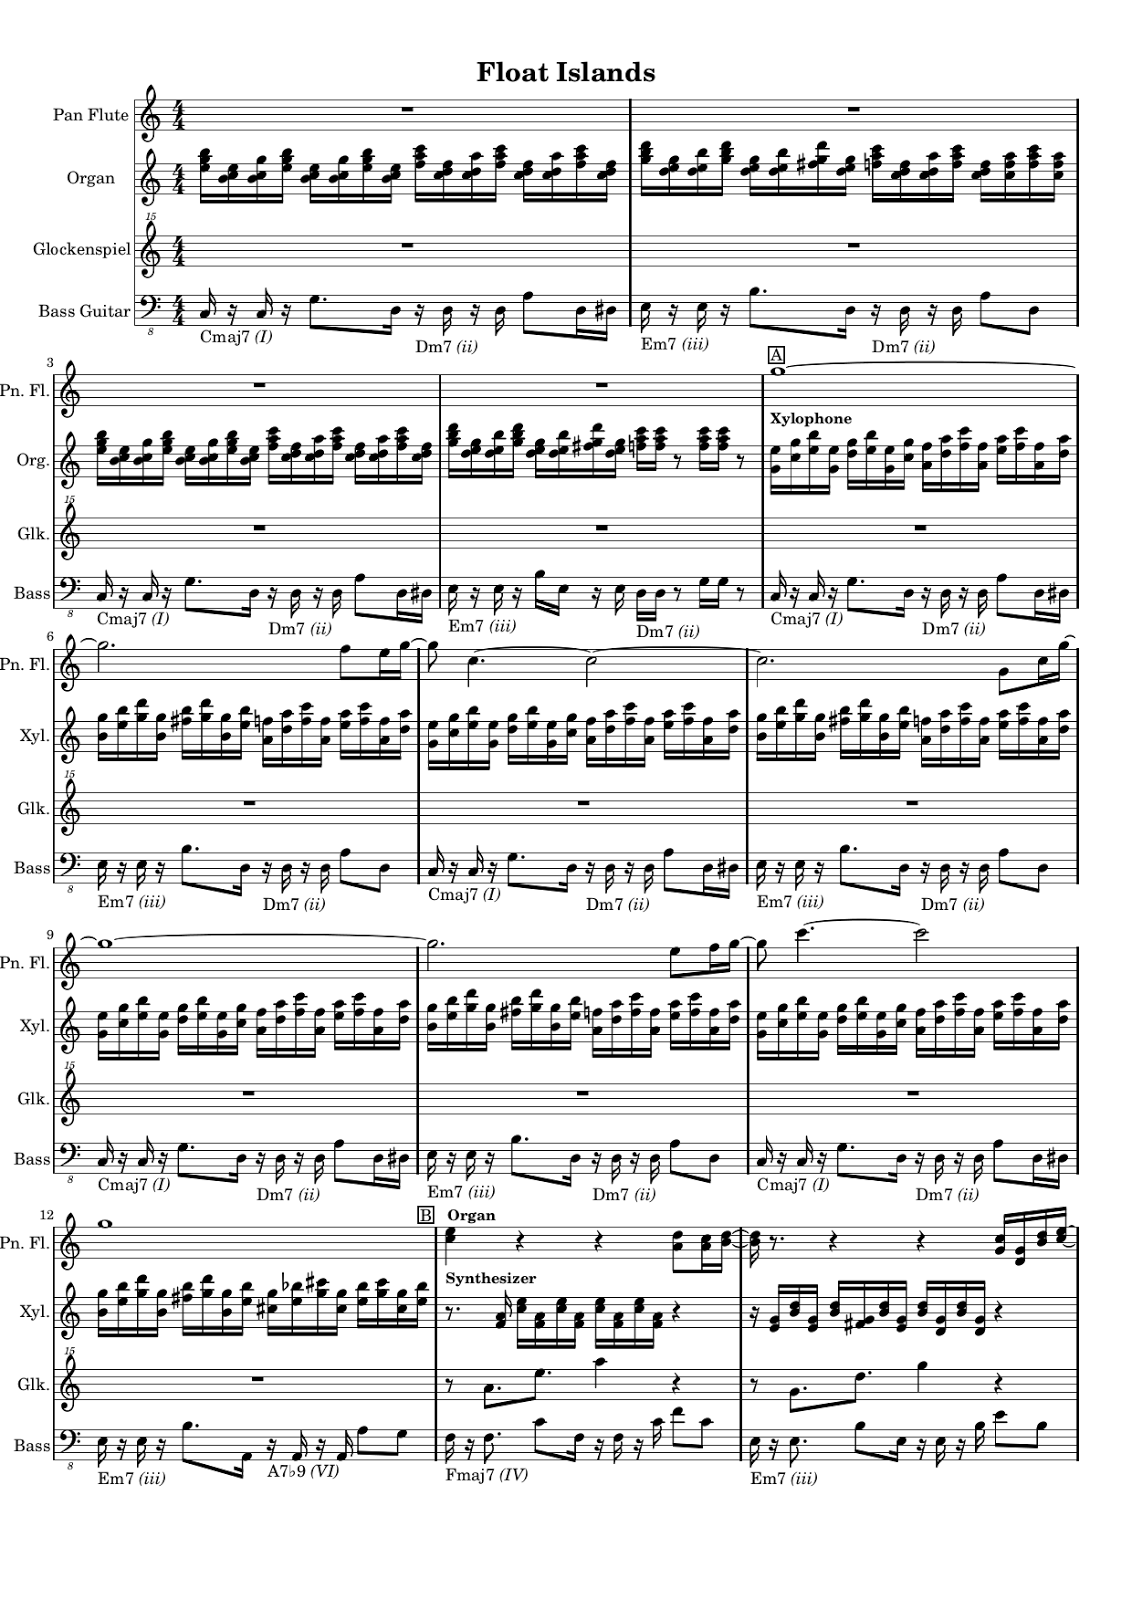 Vgm is bad for you kirby super star 05 float islands kirby super star float islands sheet music hexwebz Image collections